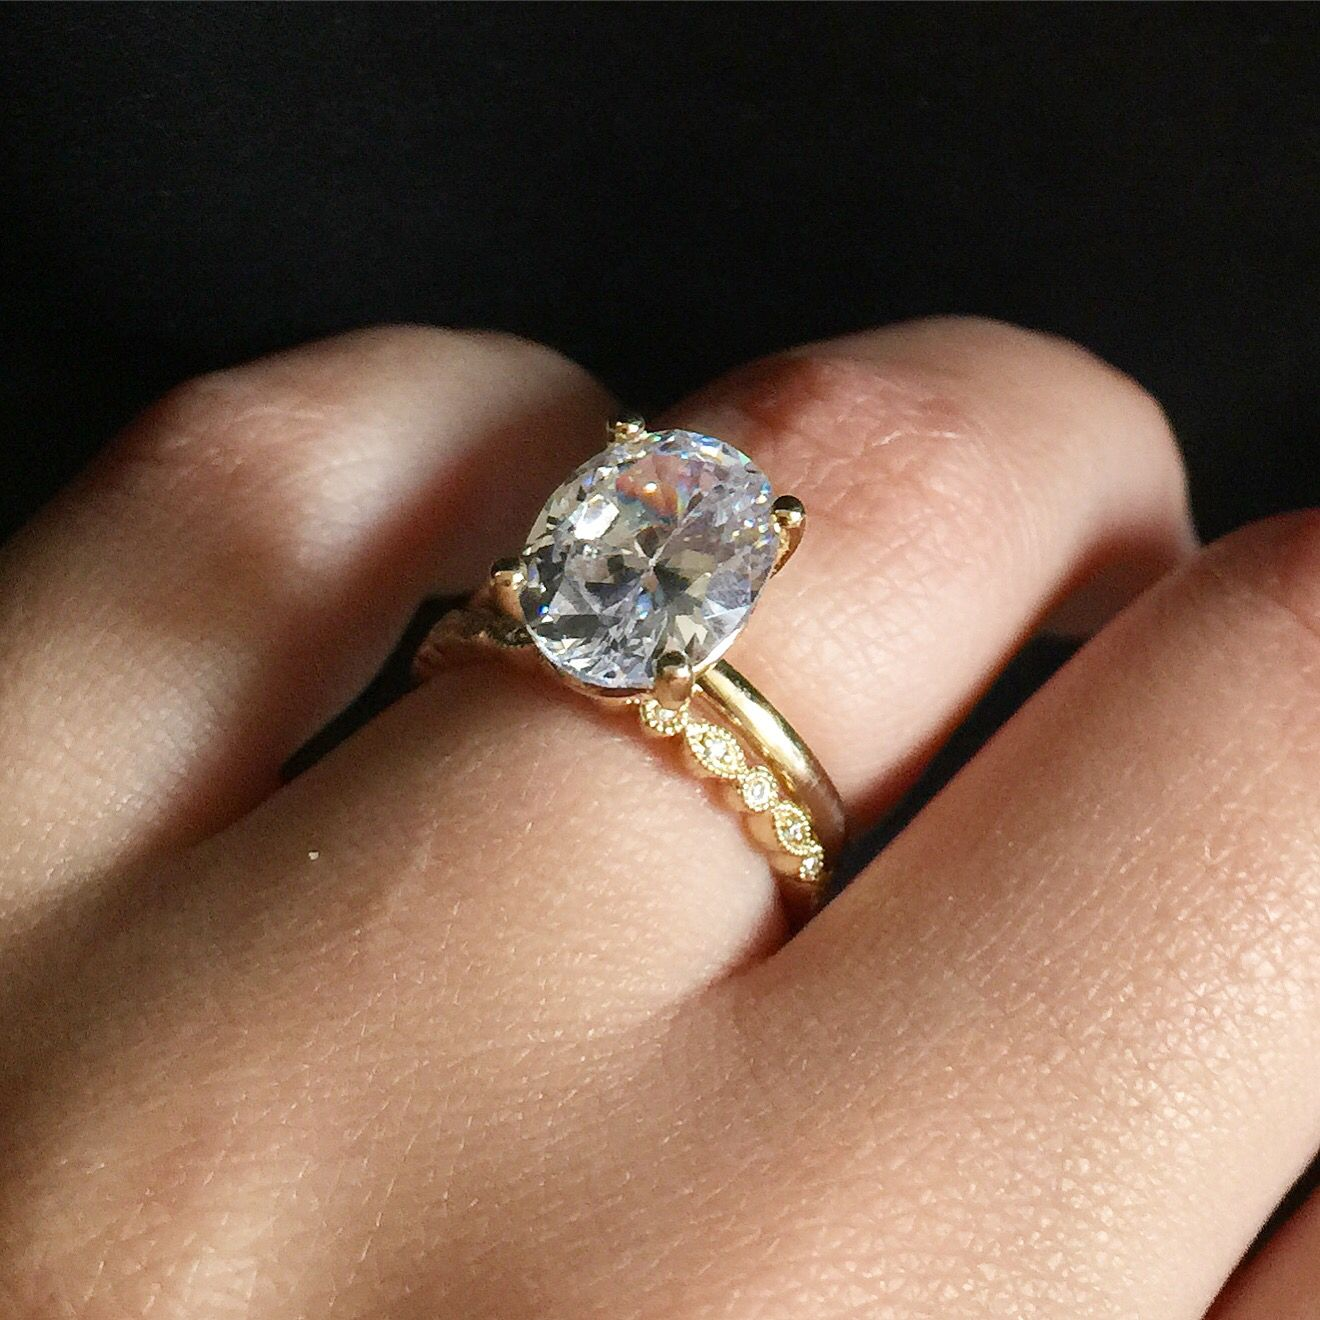 3 Carat Oval Diamond Engagement Ring Solitaire With Vintage Wedding